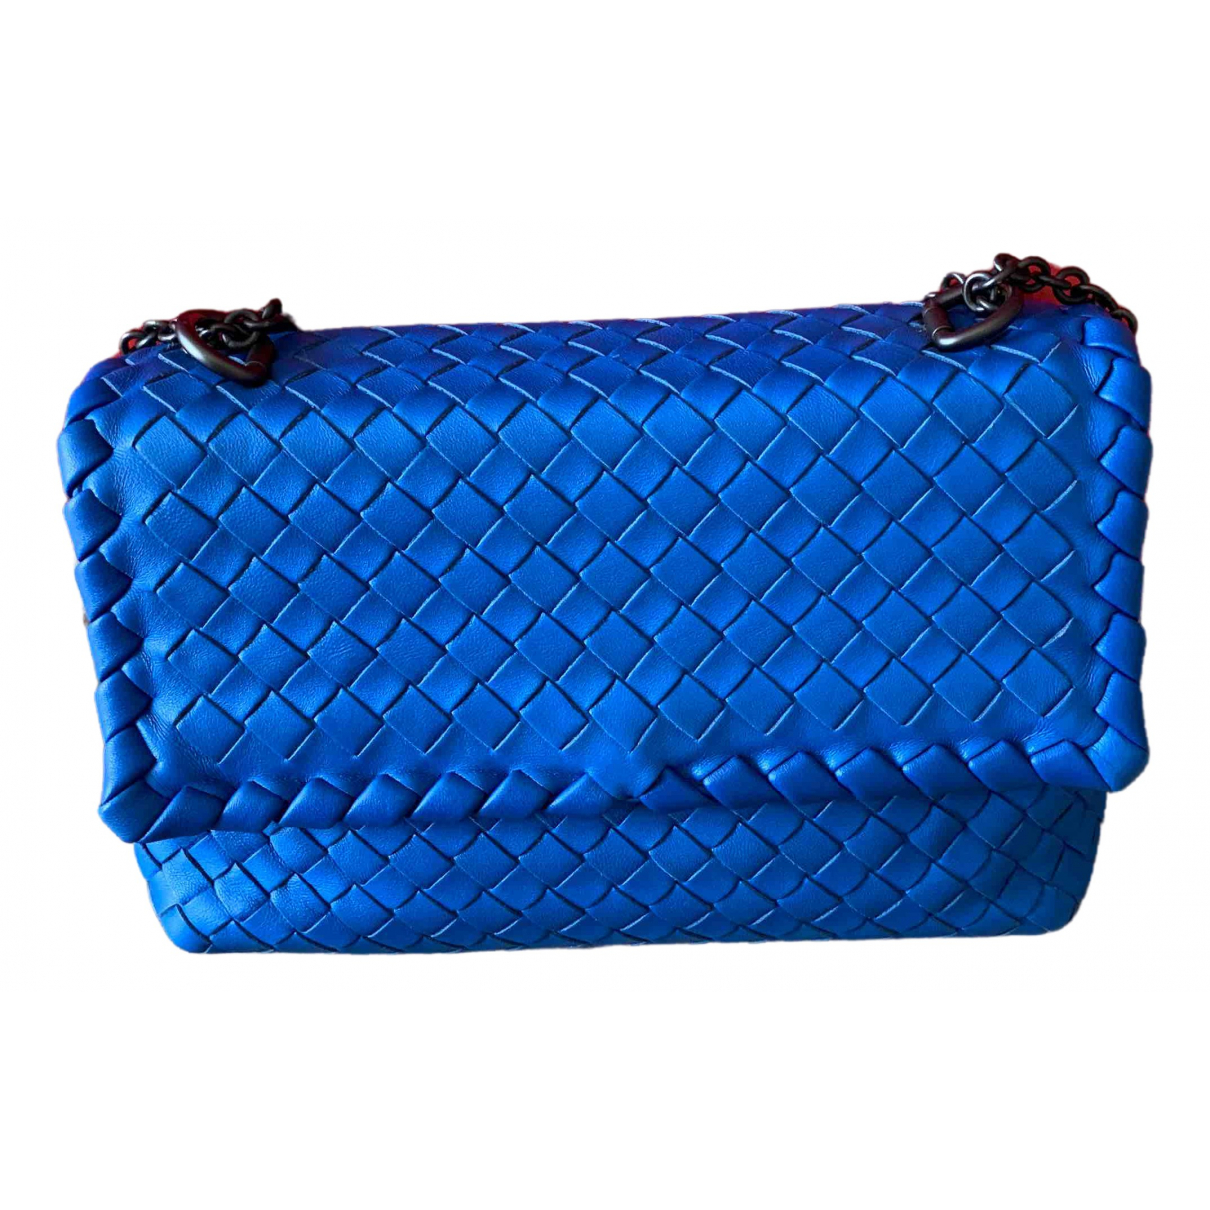 Bottega Veneta Olimpia Blue Leather handbag for Women \N